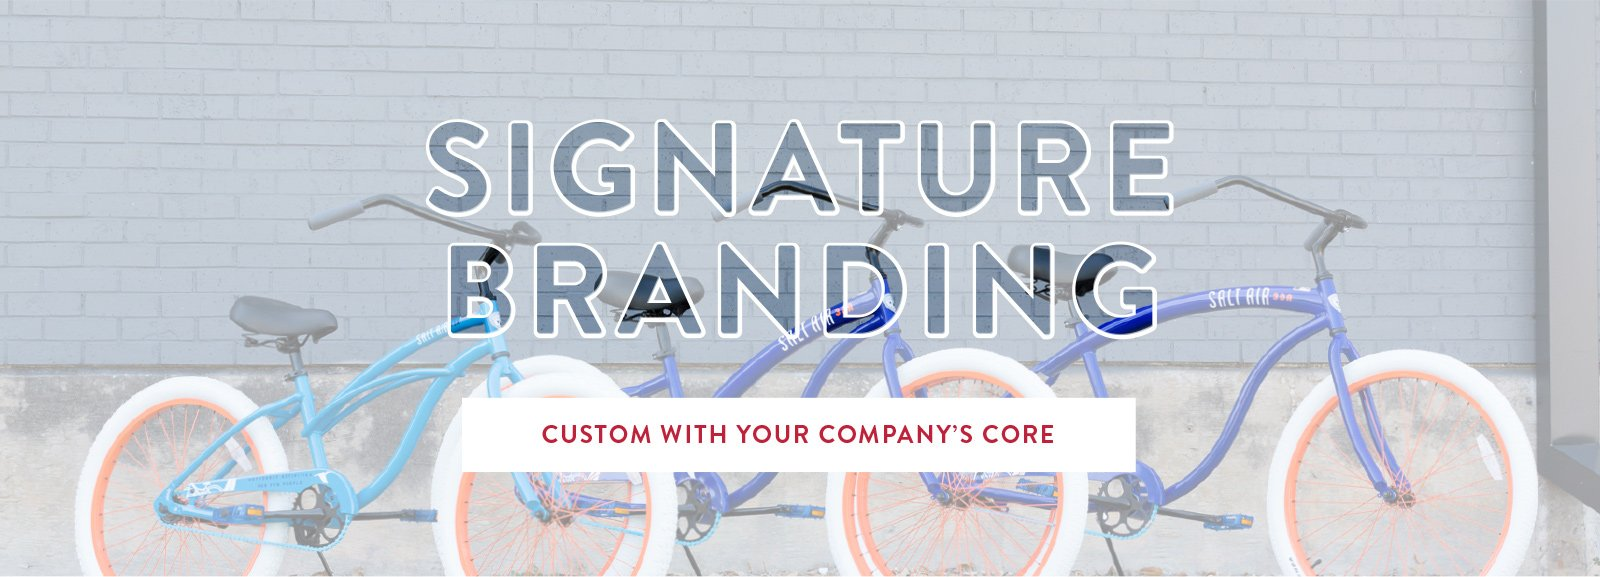 About Signature Branding